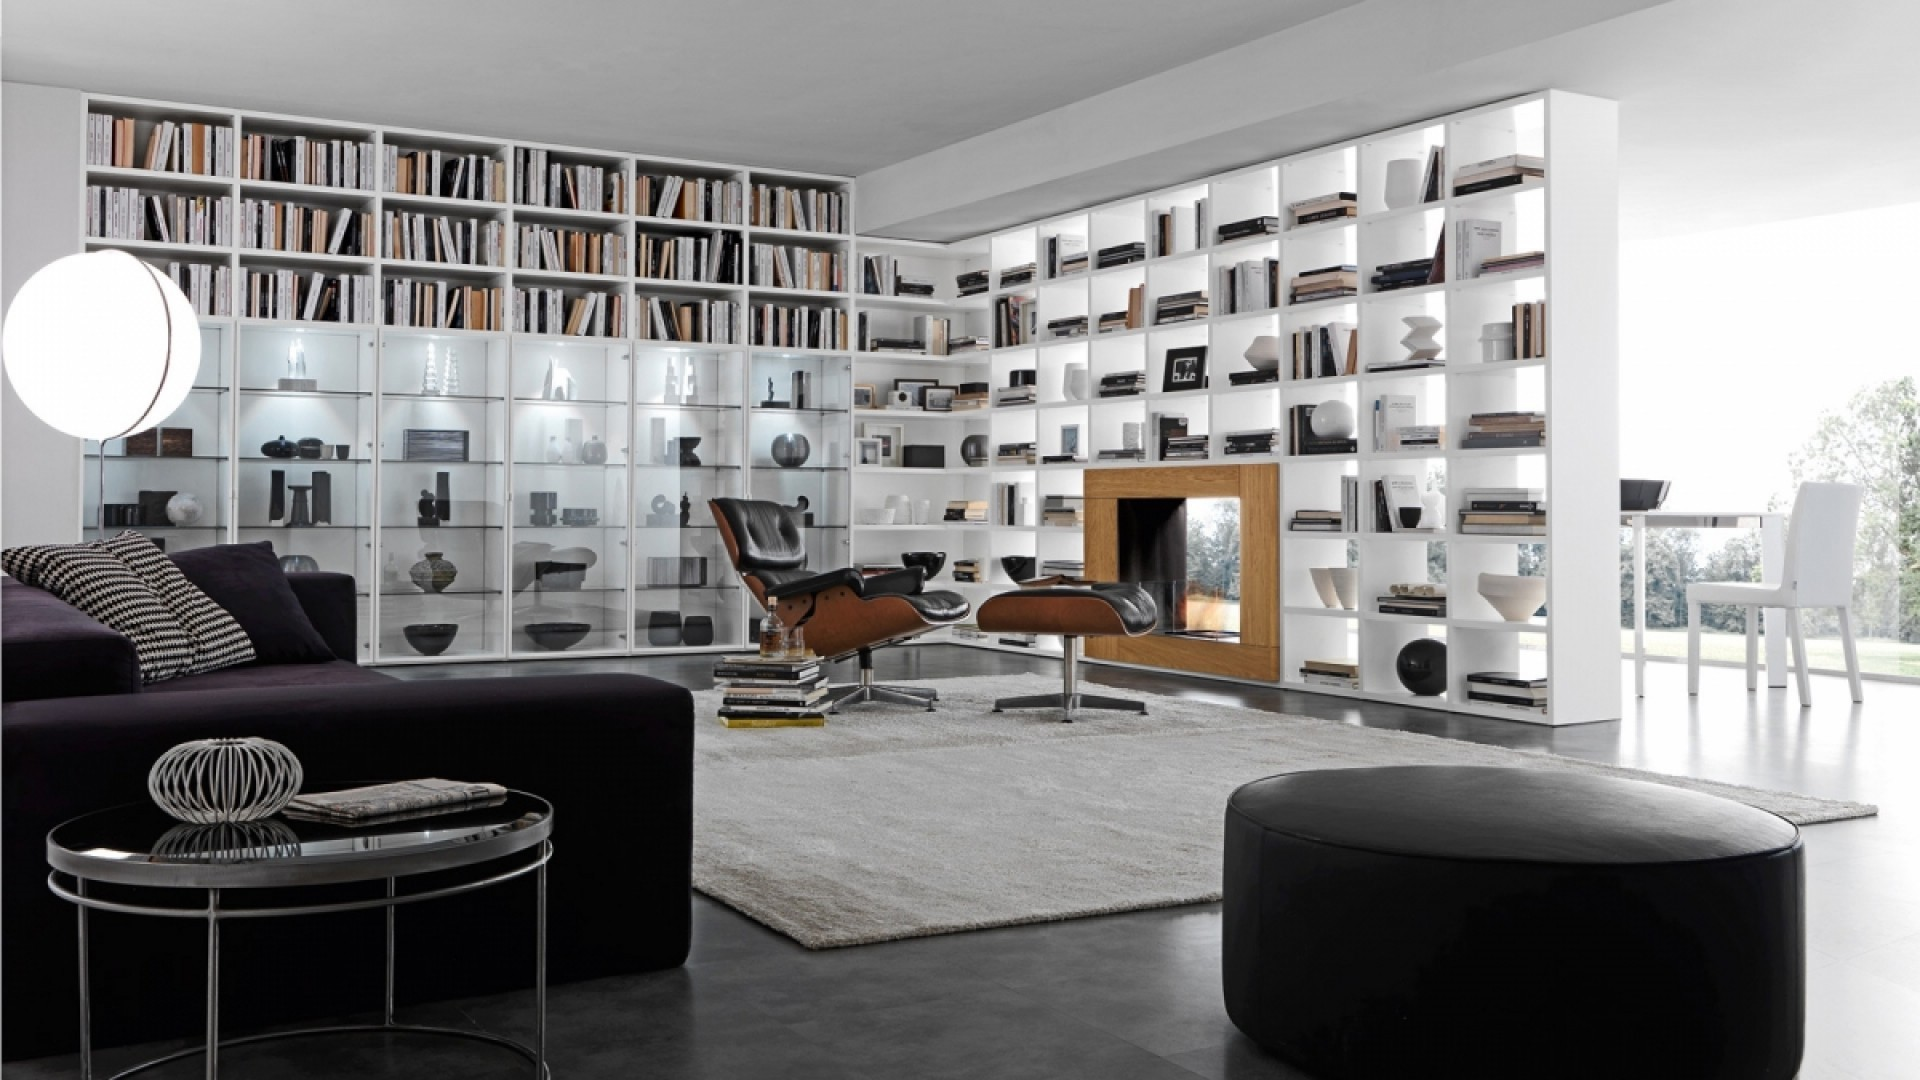 Libreria Del Camino Pari Dispari Bookcase System By Presotto Habitat By Design